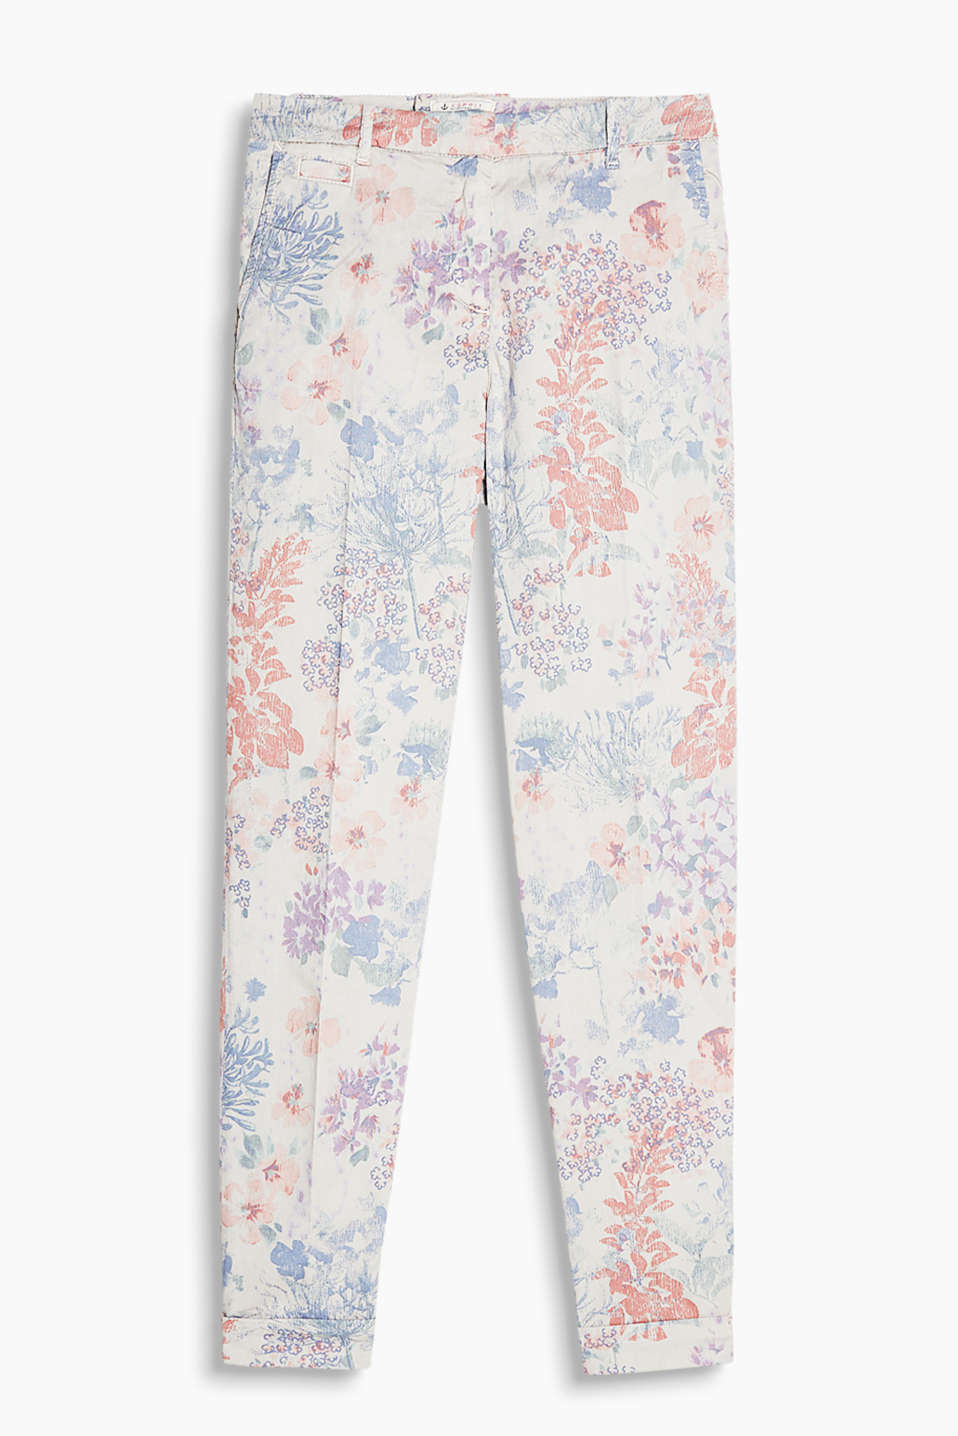 With a delicate floral pattern: Ankle-length, 4-way stretch trousers with a slimming effect